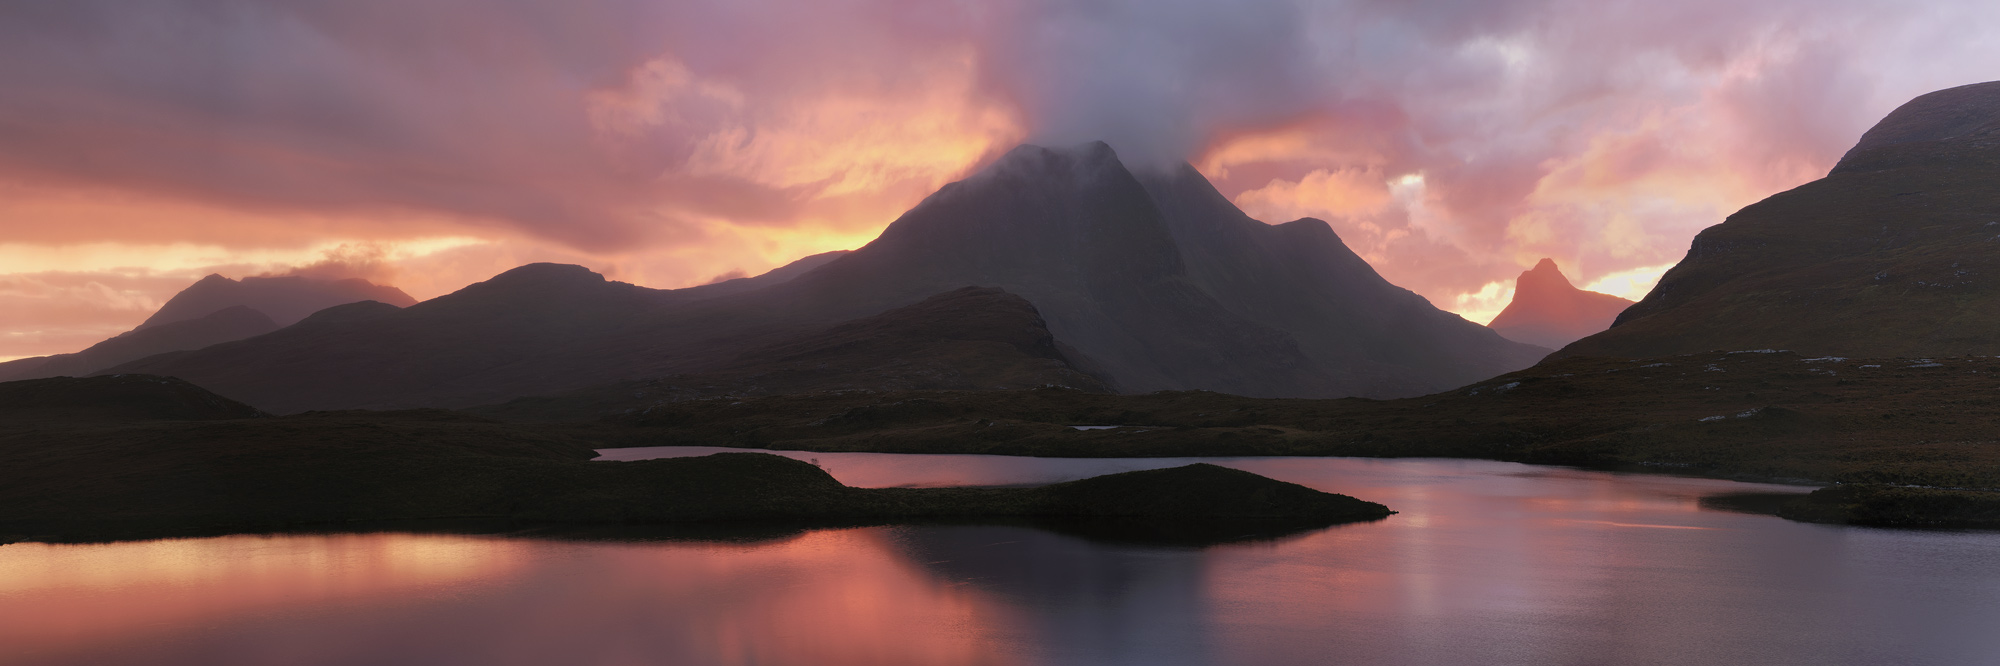 Sunset Pano Knockan Crag, Knockan Crag, Assynt, Scotland, fiery, red, glow, sunset, seeping, reflected, mountains, epic, photo